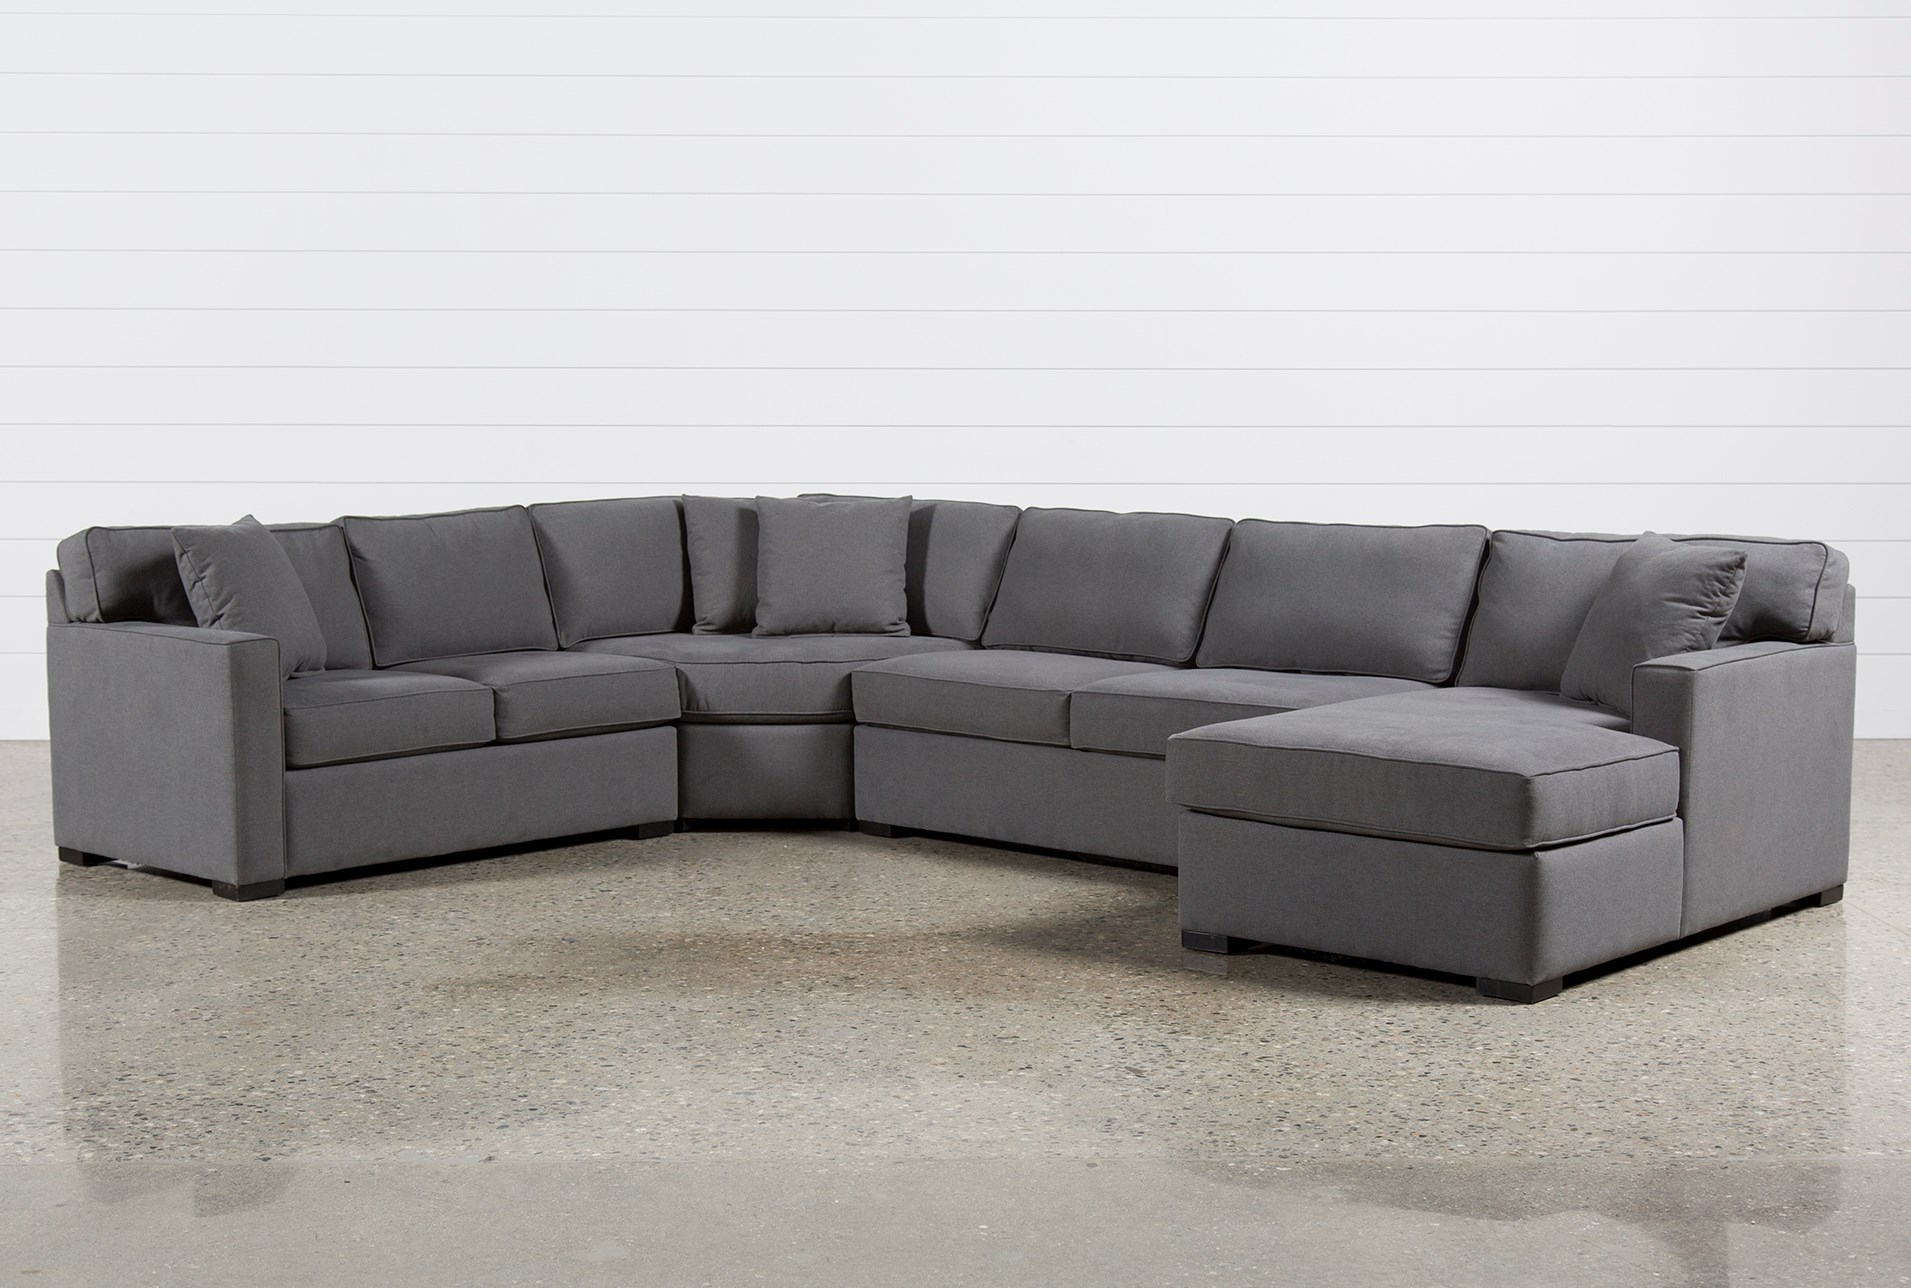 4 Piece Sectional Sofa Brown 4 Piece Sectional Sofa With ...